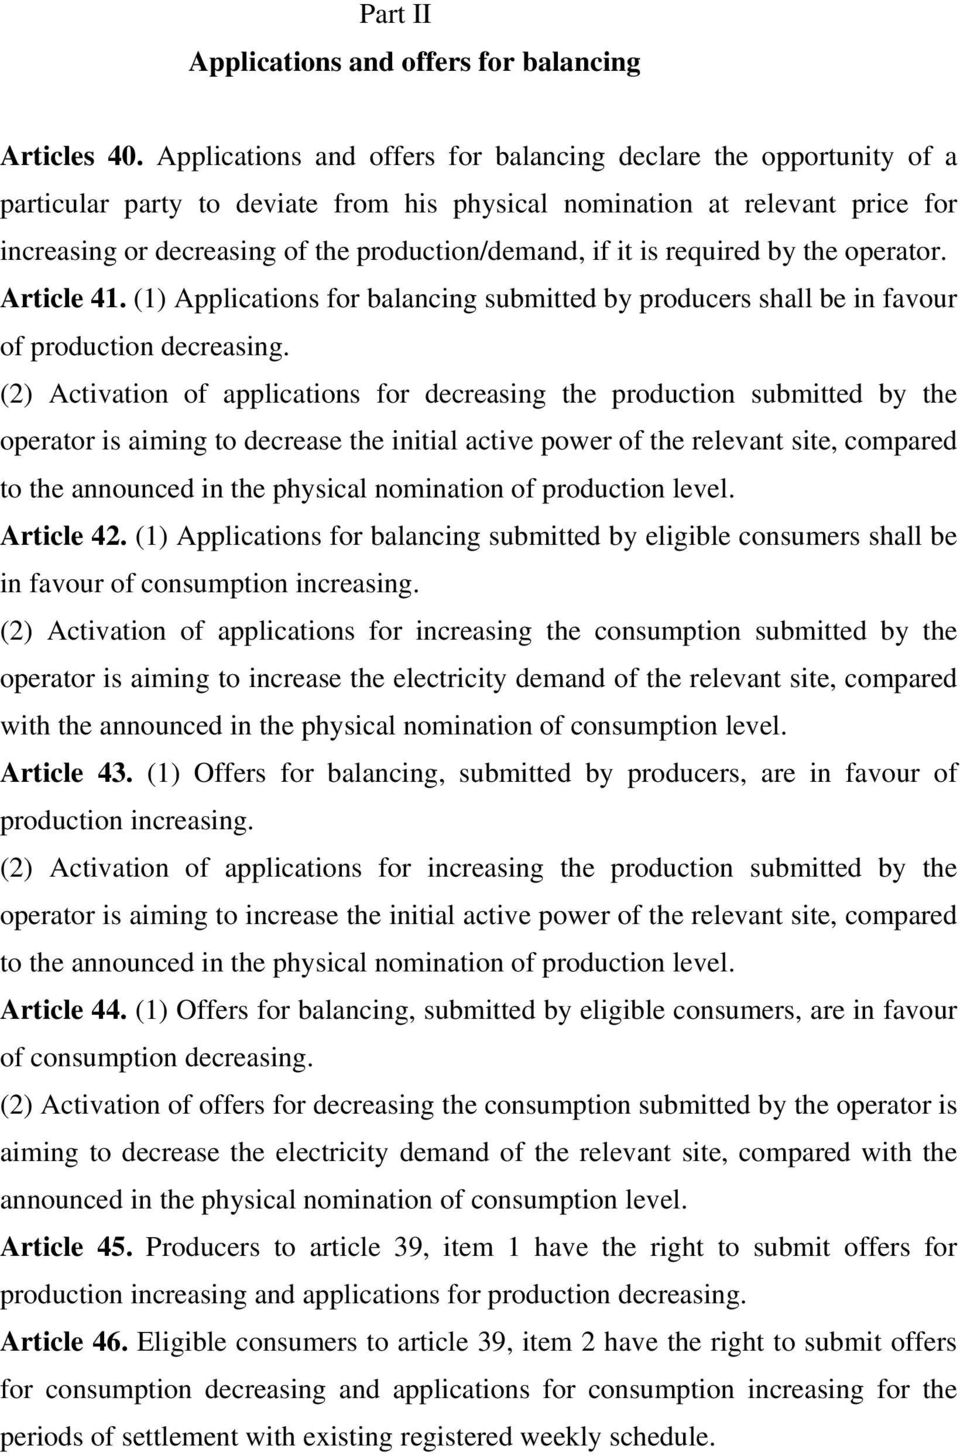 it is required by the operator. Article 41. (1) Applications for balancing submitted by producers shall be in favour of production decreasing.